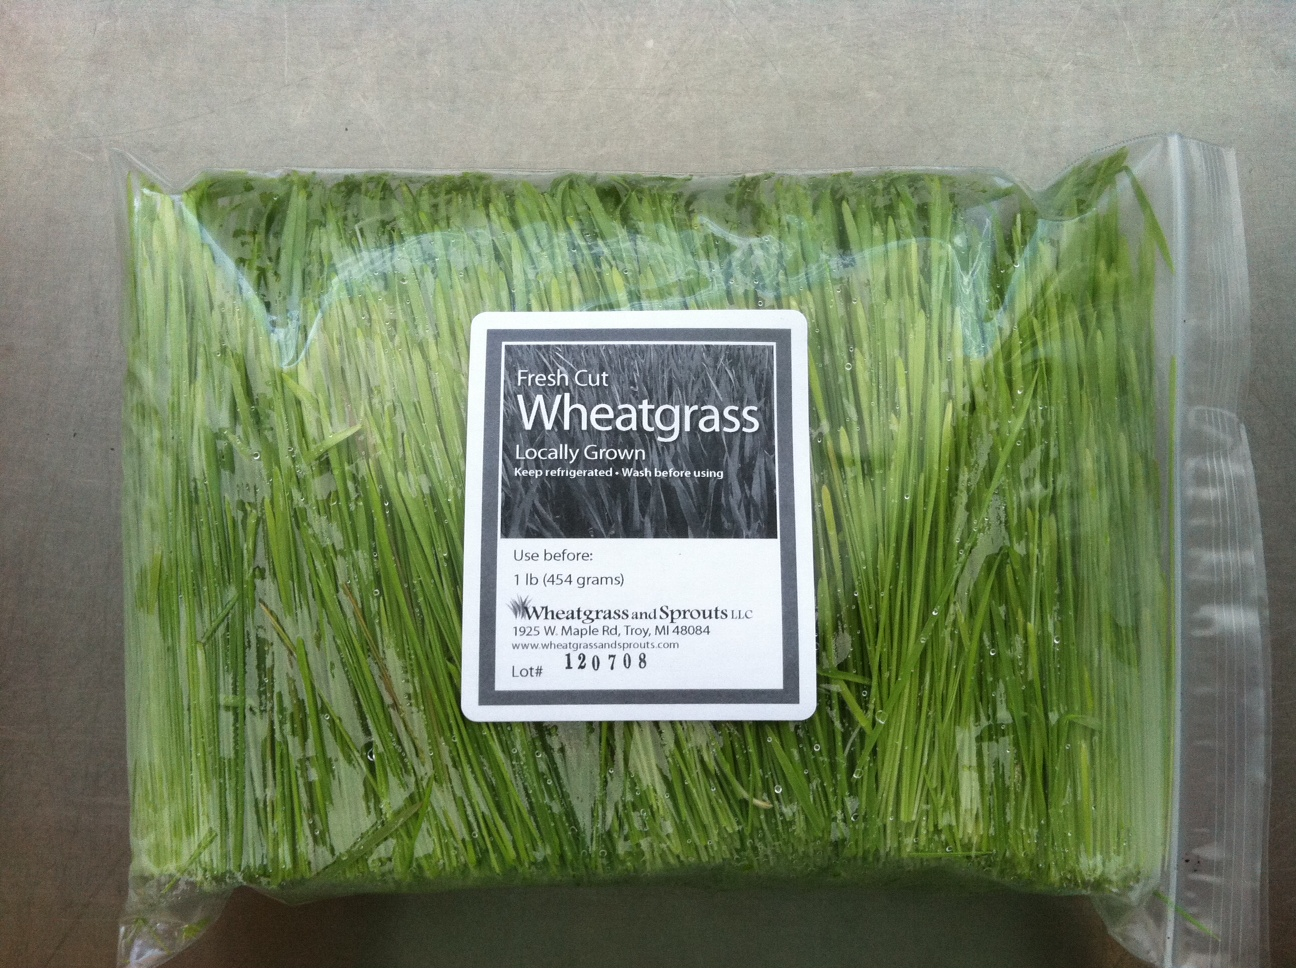 Wheatgrass - fresh cut (1/2 pound bag)